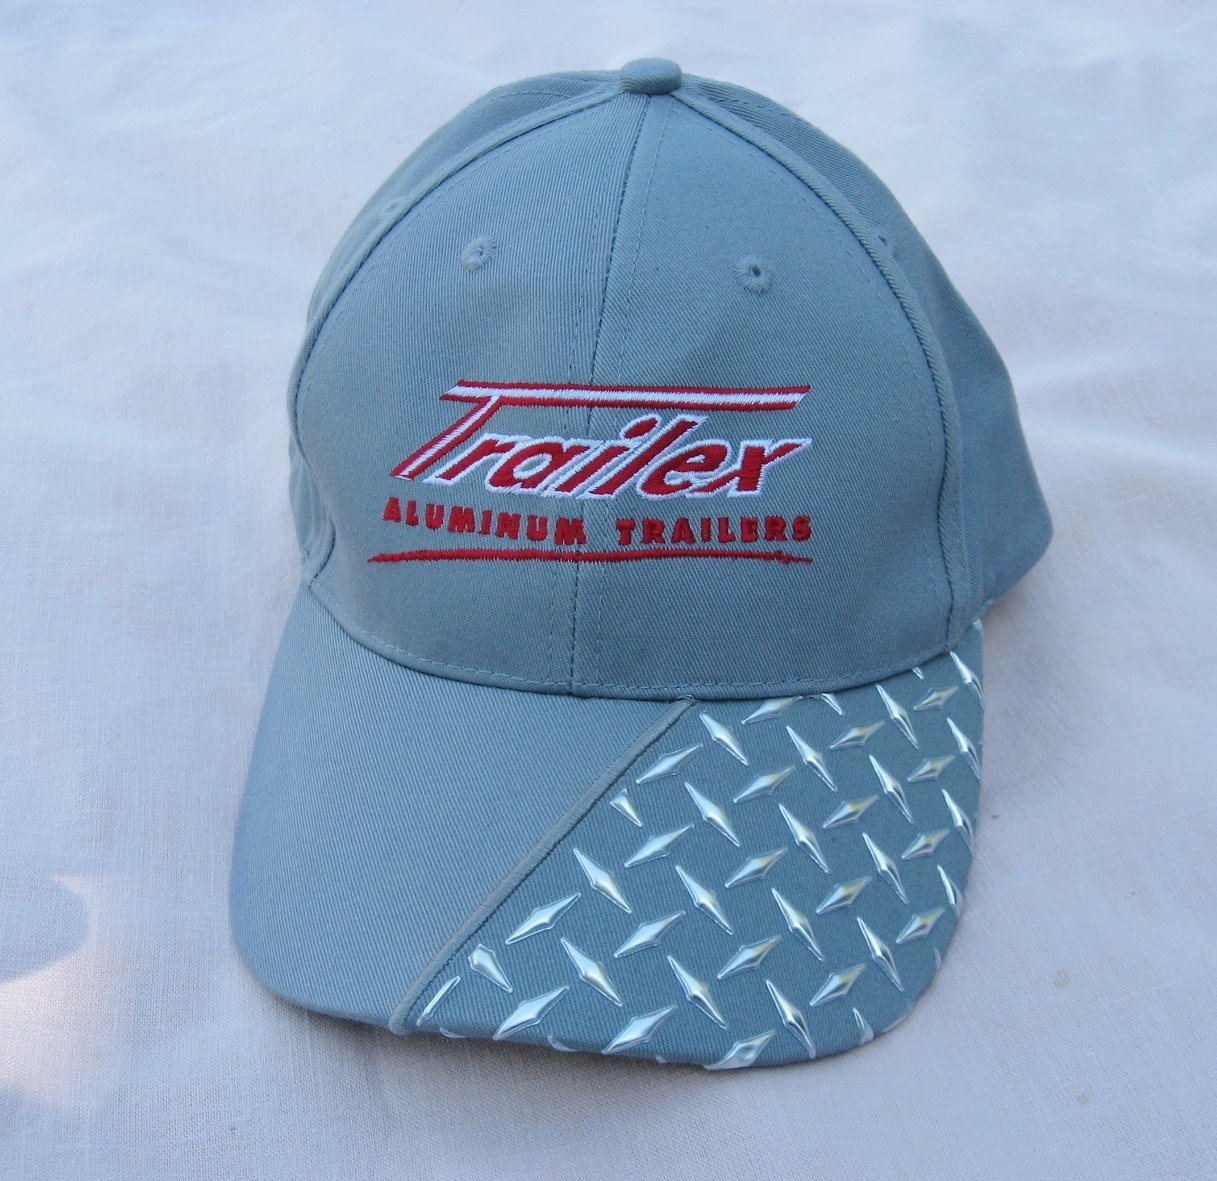 Gray Trailex Aluminum Trailer Baseball Cap Adjustable Advertising